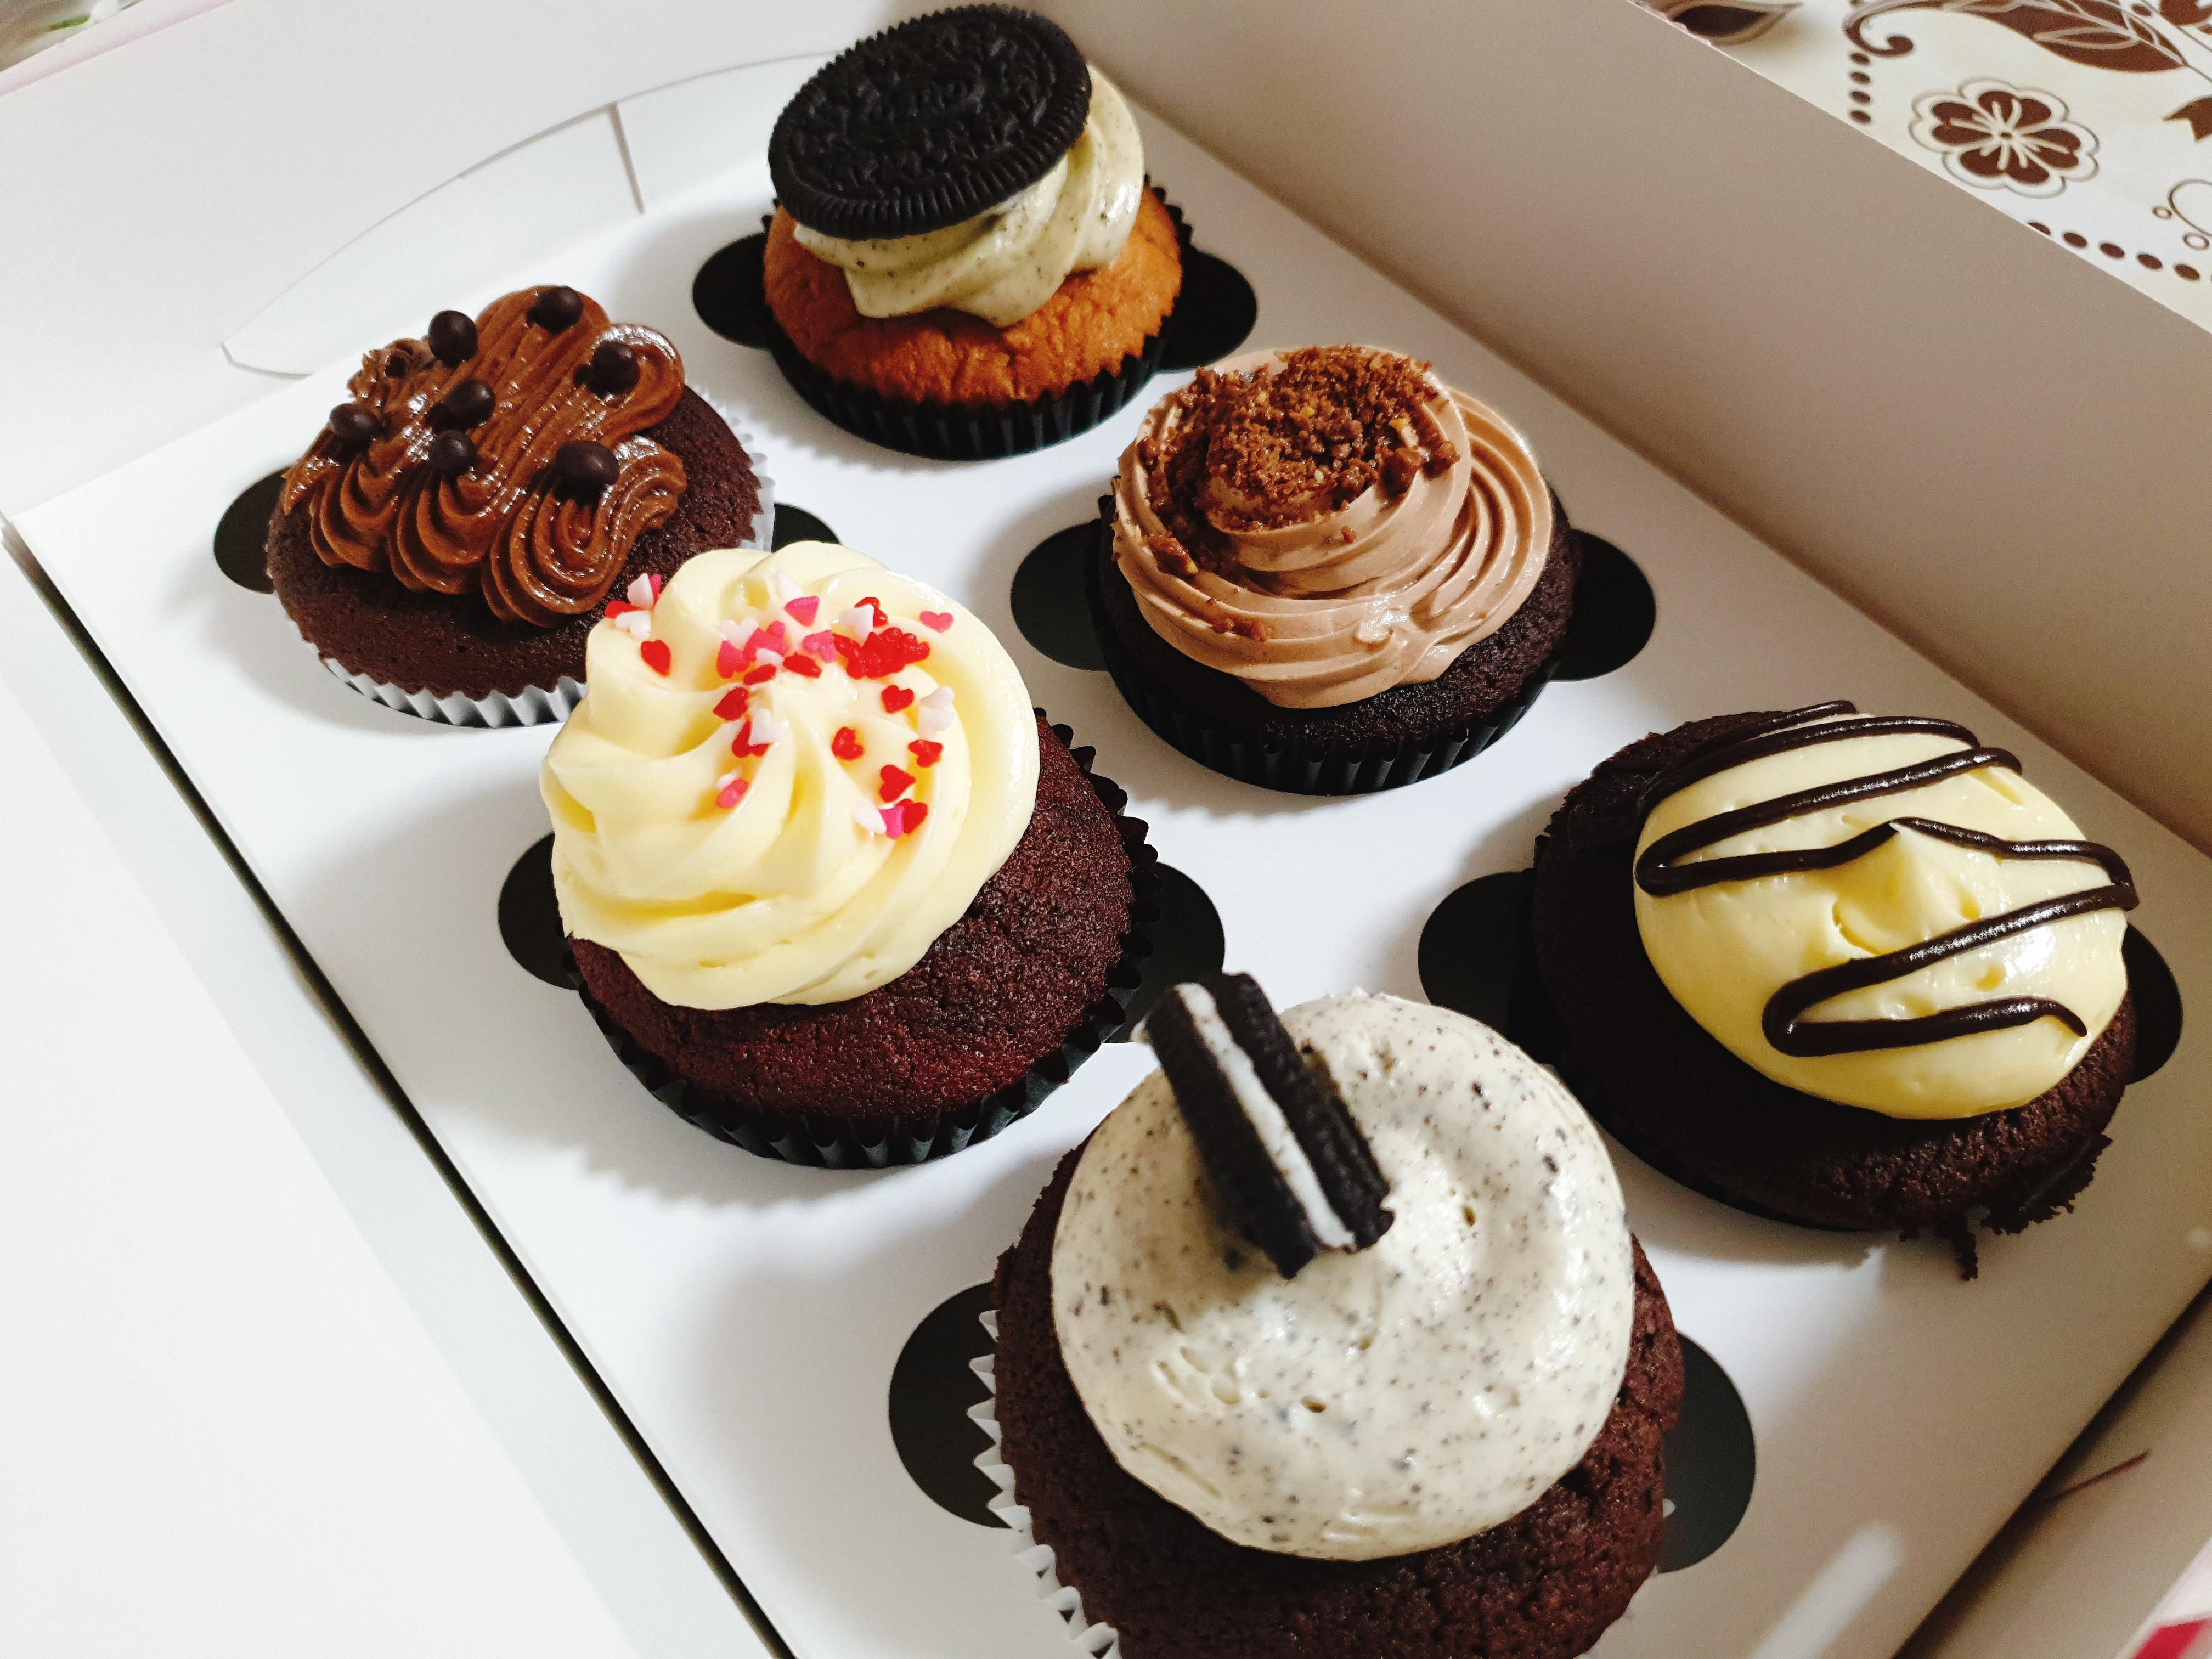 Cupcakes from Twelve Cupcakes